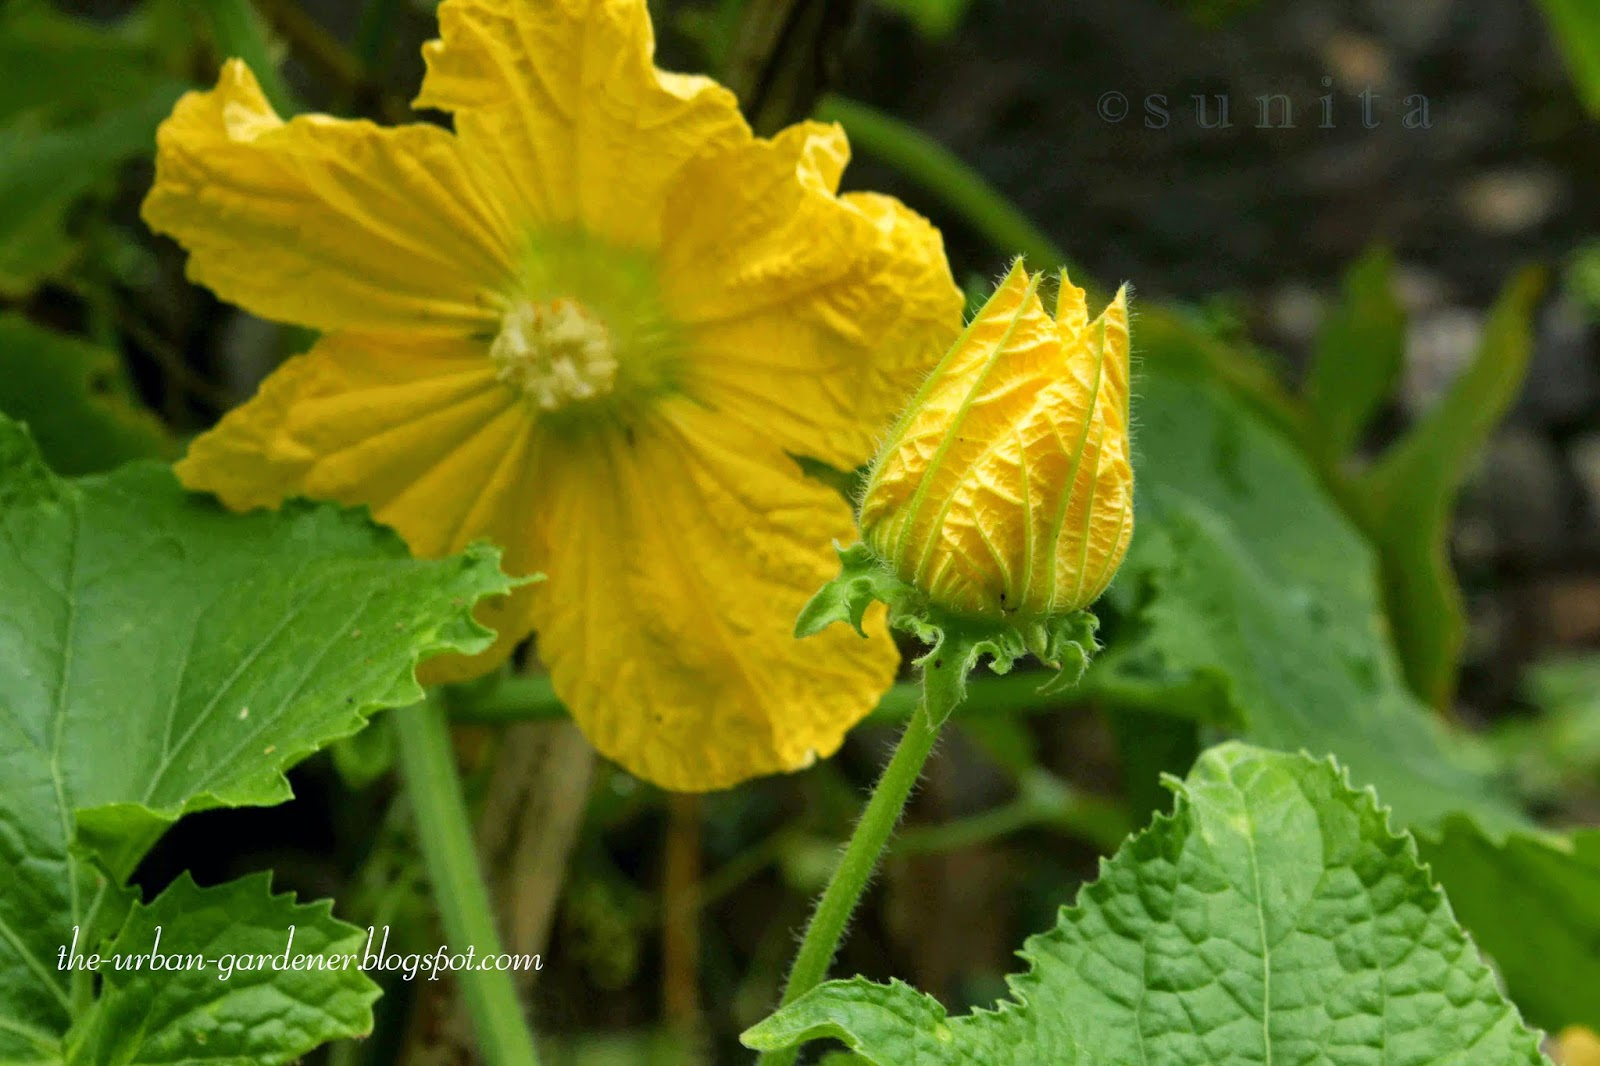 Bright golden flowers of Ash Gourd. Ornamental as well as edible flowers for this vegetable plant.